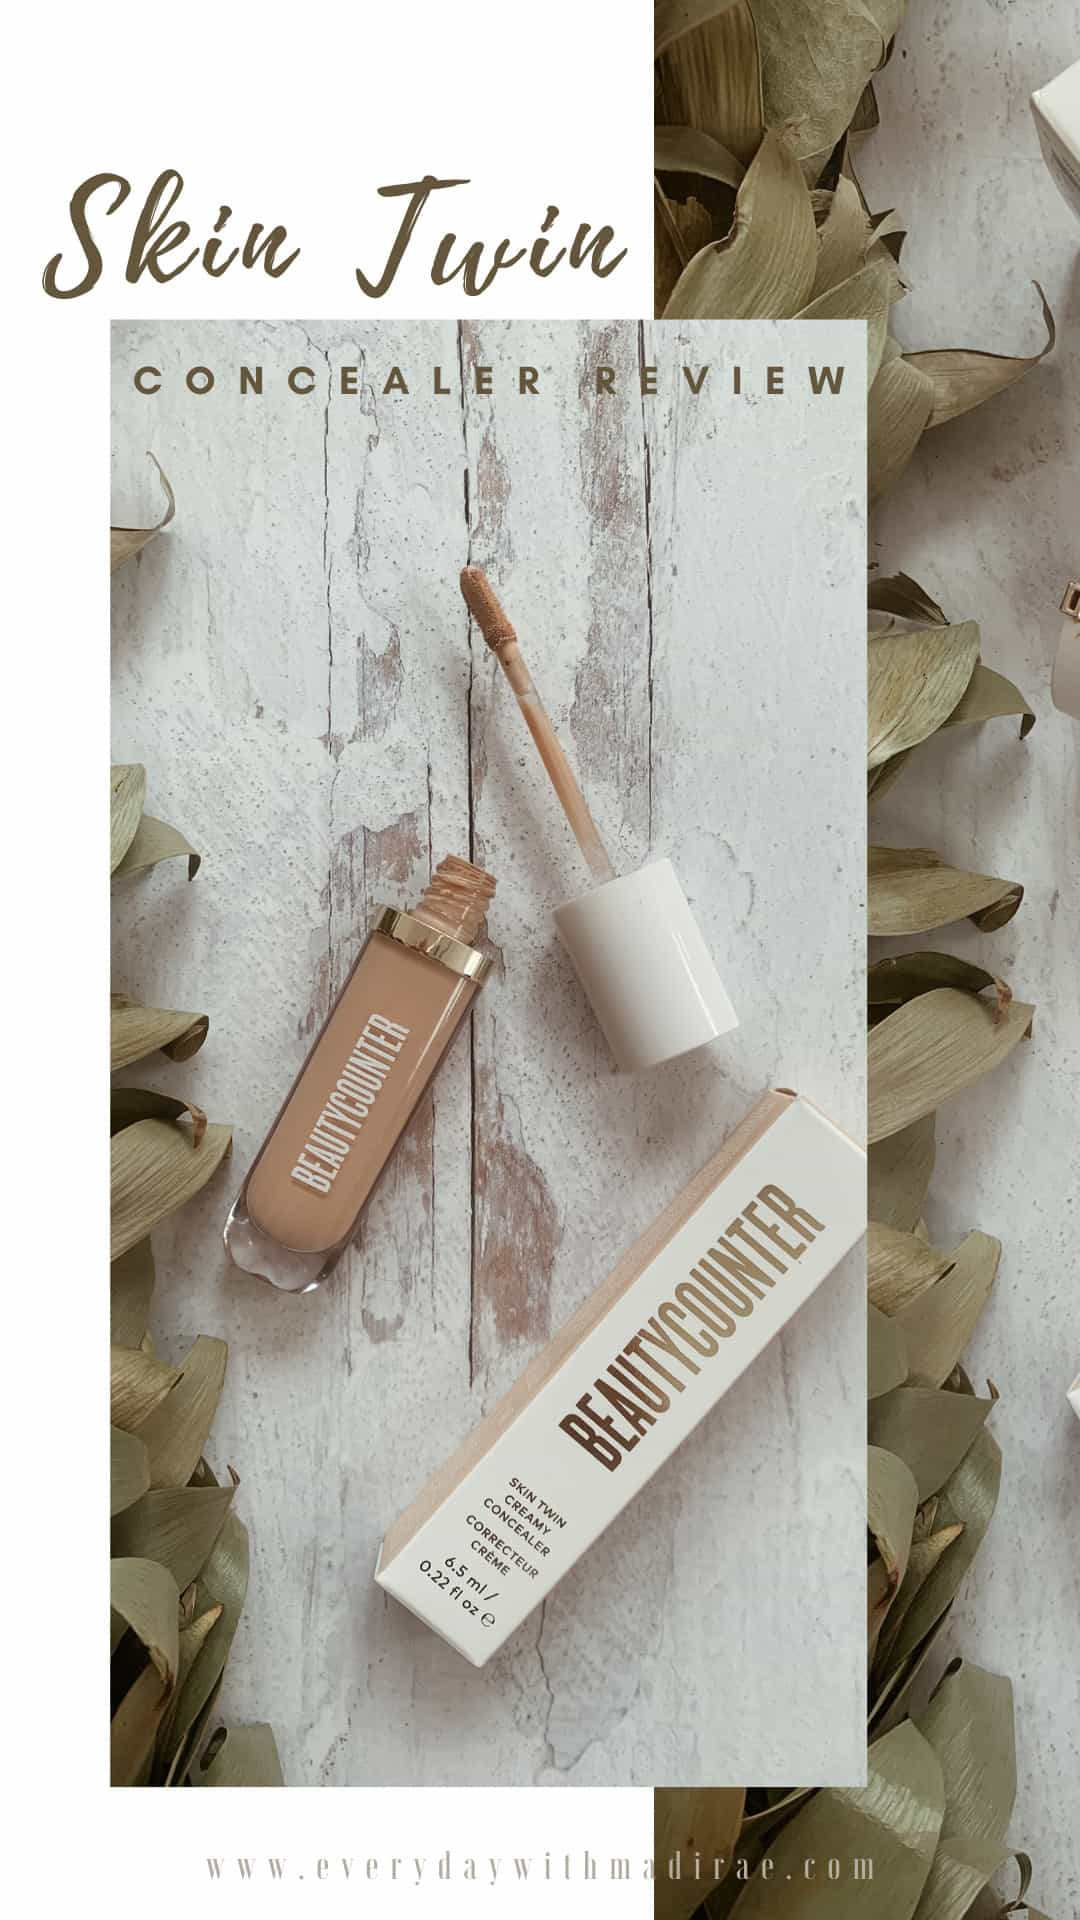 Reviewing Beautycounter's new Skin Twin Creamy Concealer, available in 13 shades, packed with skincare benefits, & clean ingredients!